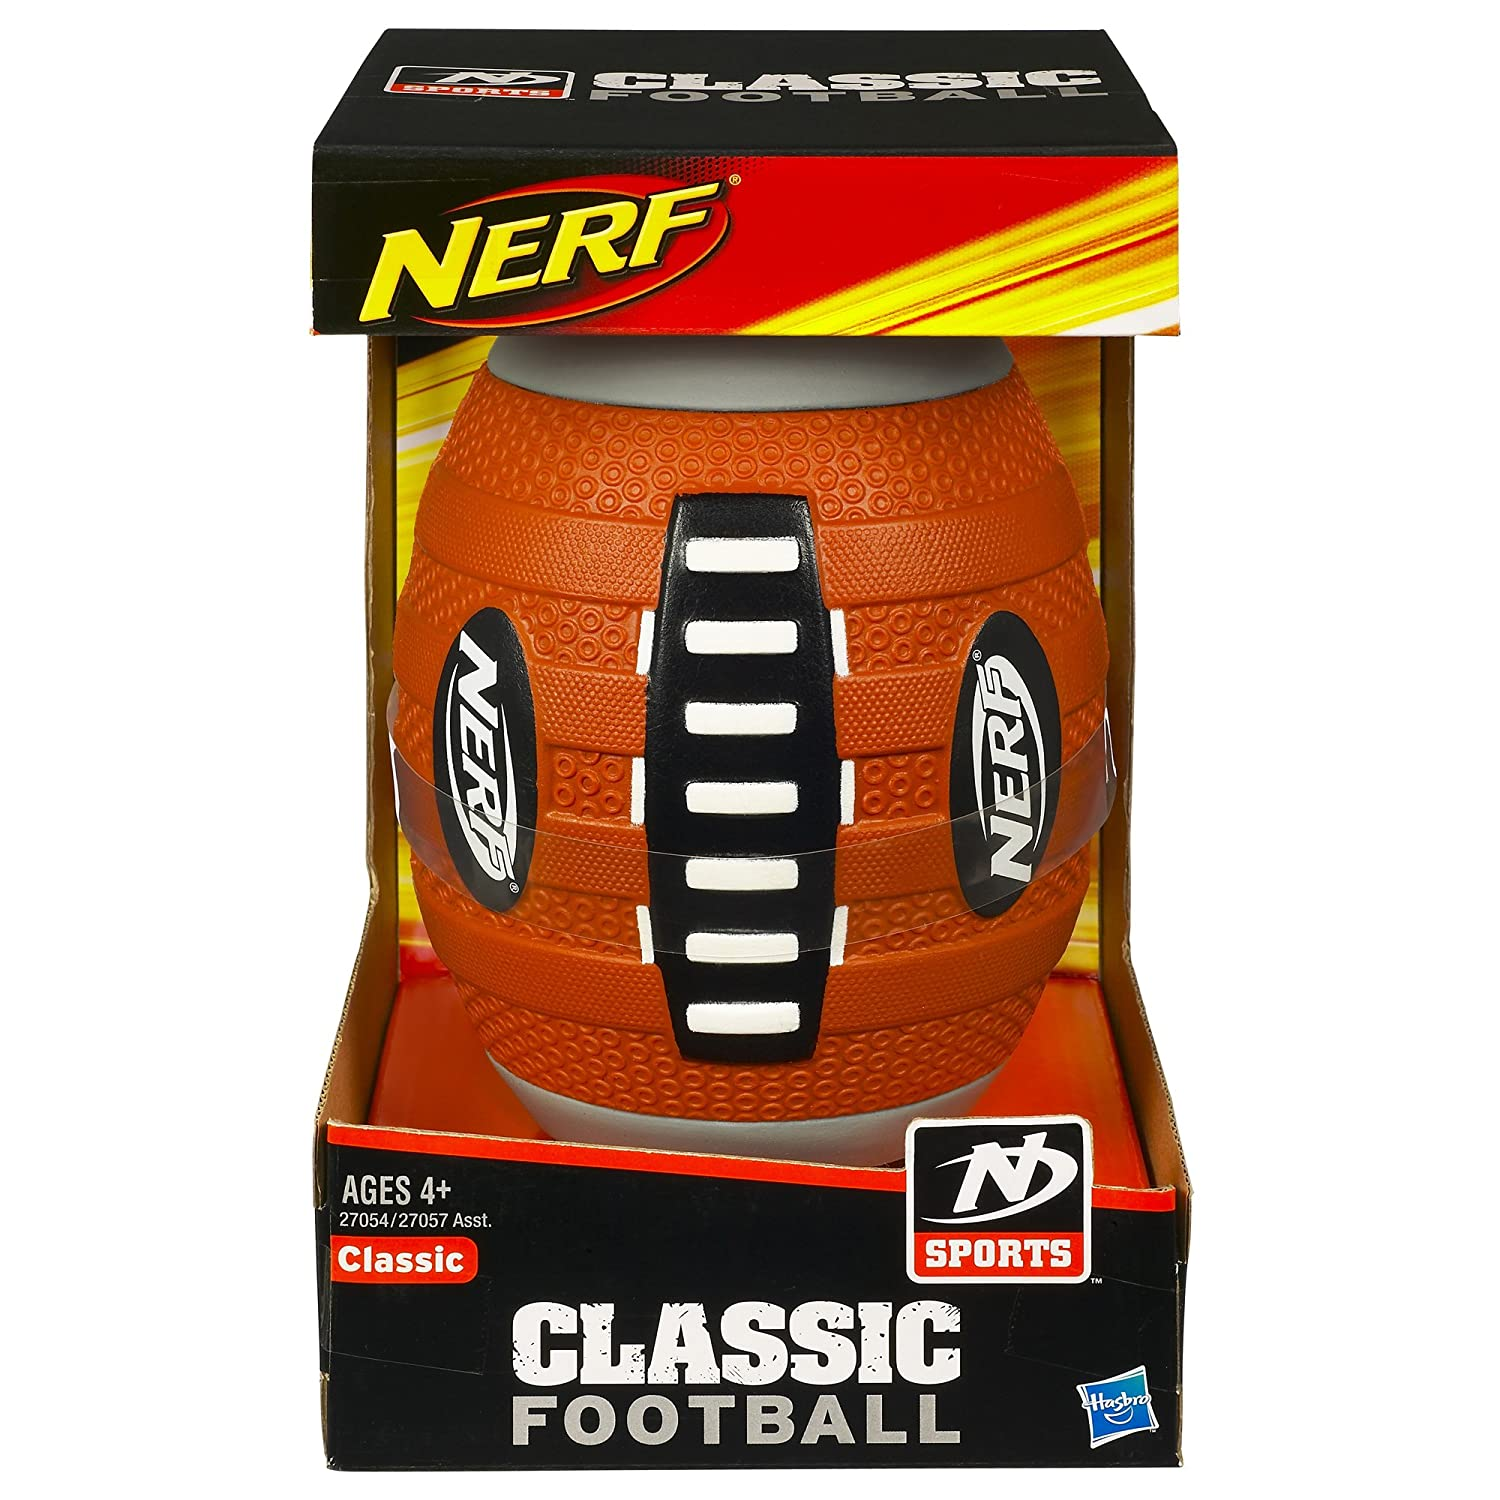 Amazon.com: Nerf N Sports Classic Football (Orange and Black): Toys ...